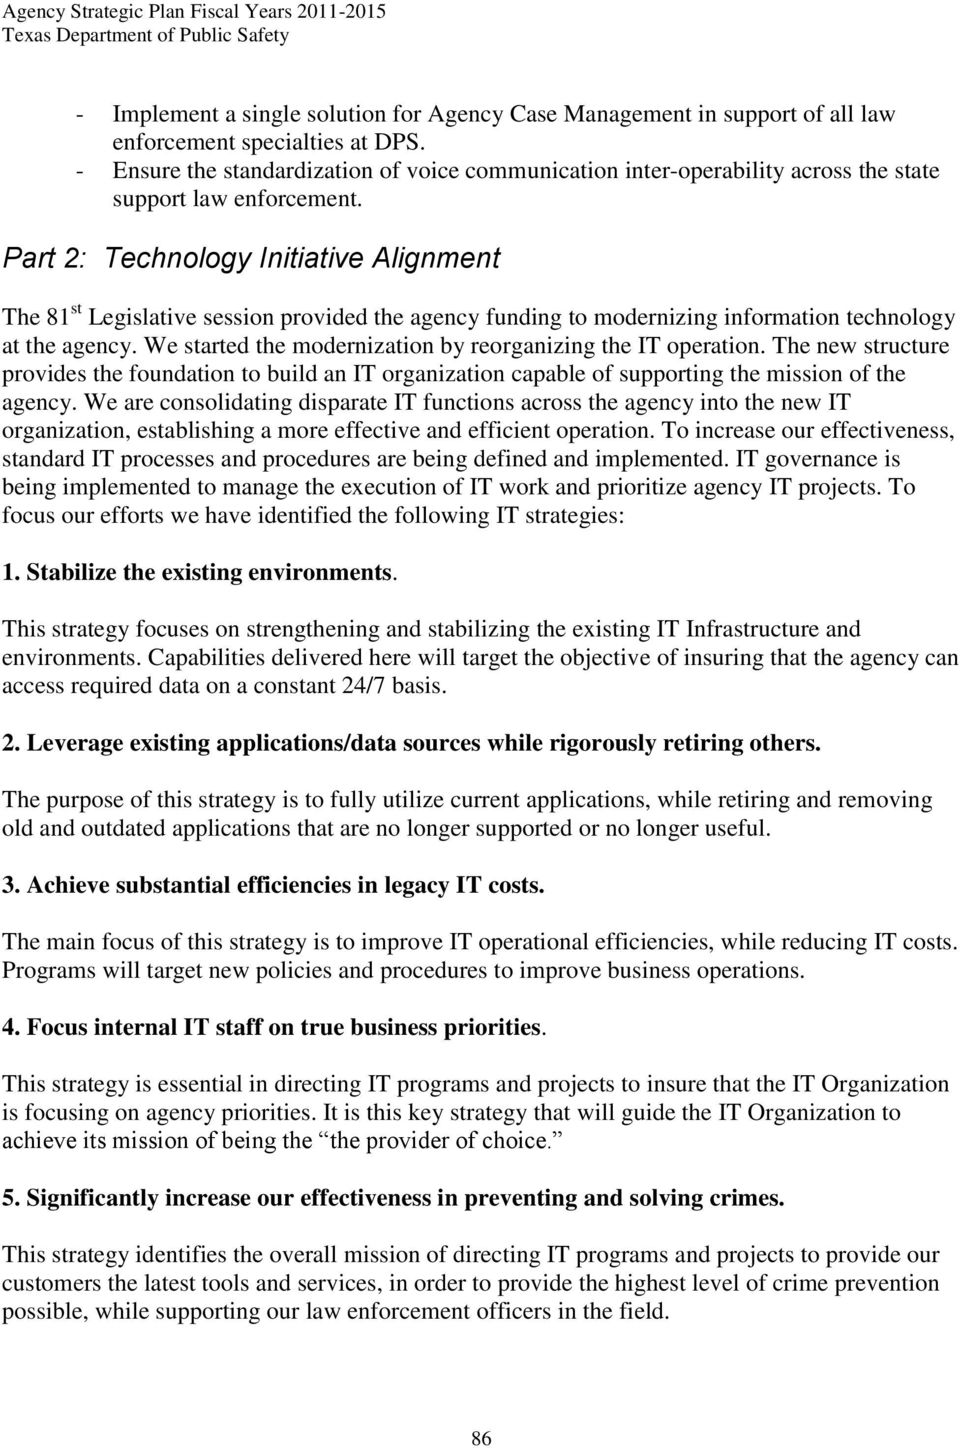 Part 2: Technology Initiative Alignment The 81 st Legislative session provided the agency funding to modernizing information technology at the agency.